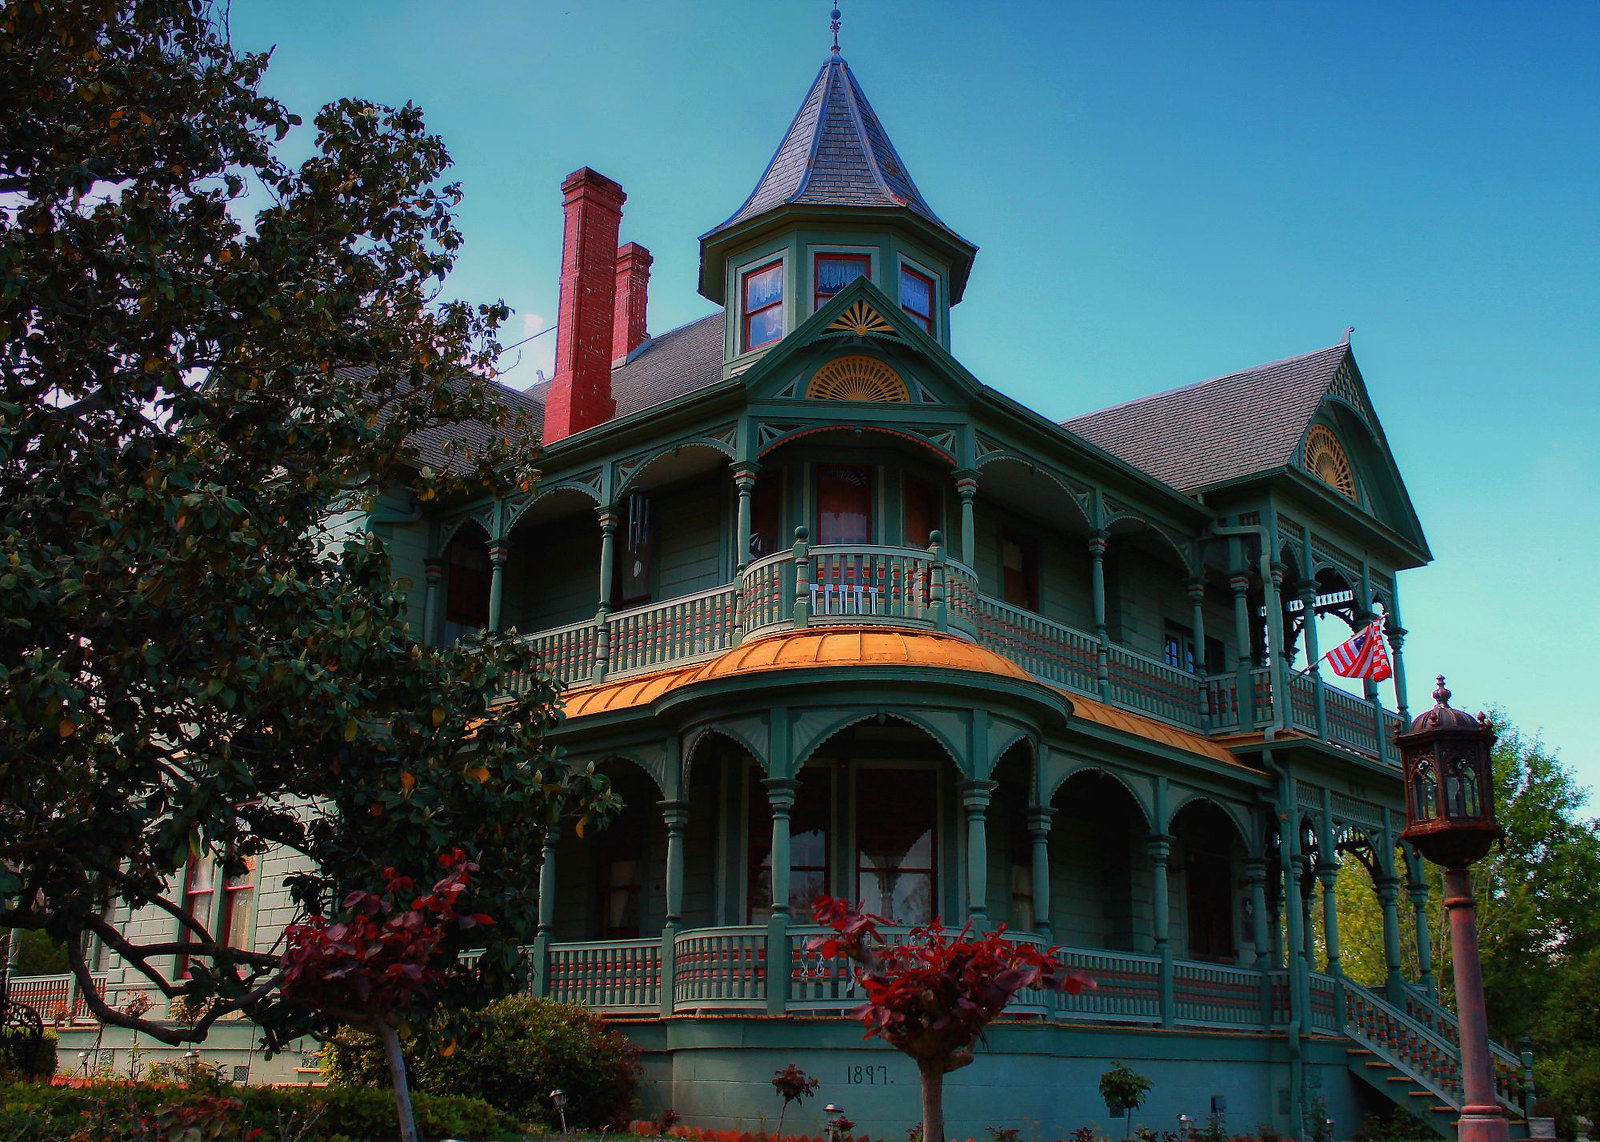 Woods-Hughes House in Brenham, Texas.. Credit Renelibrary